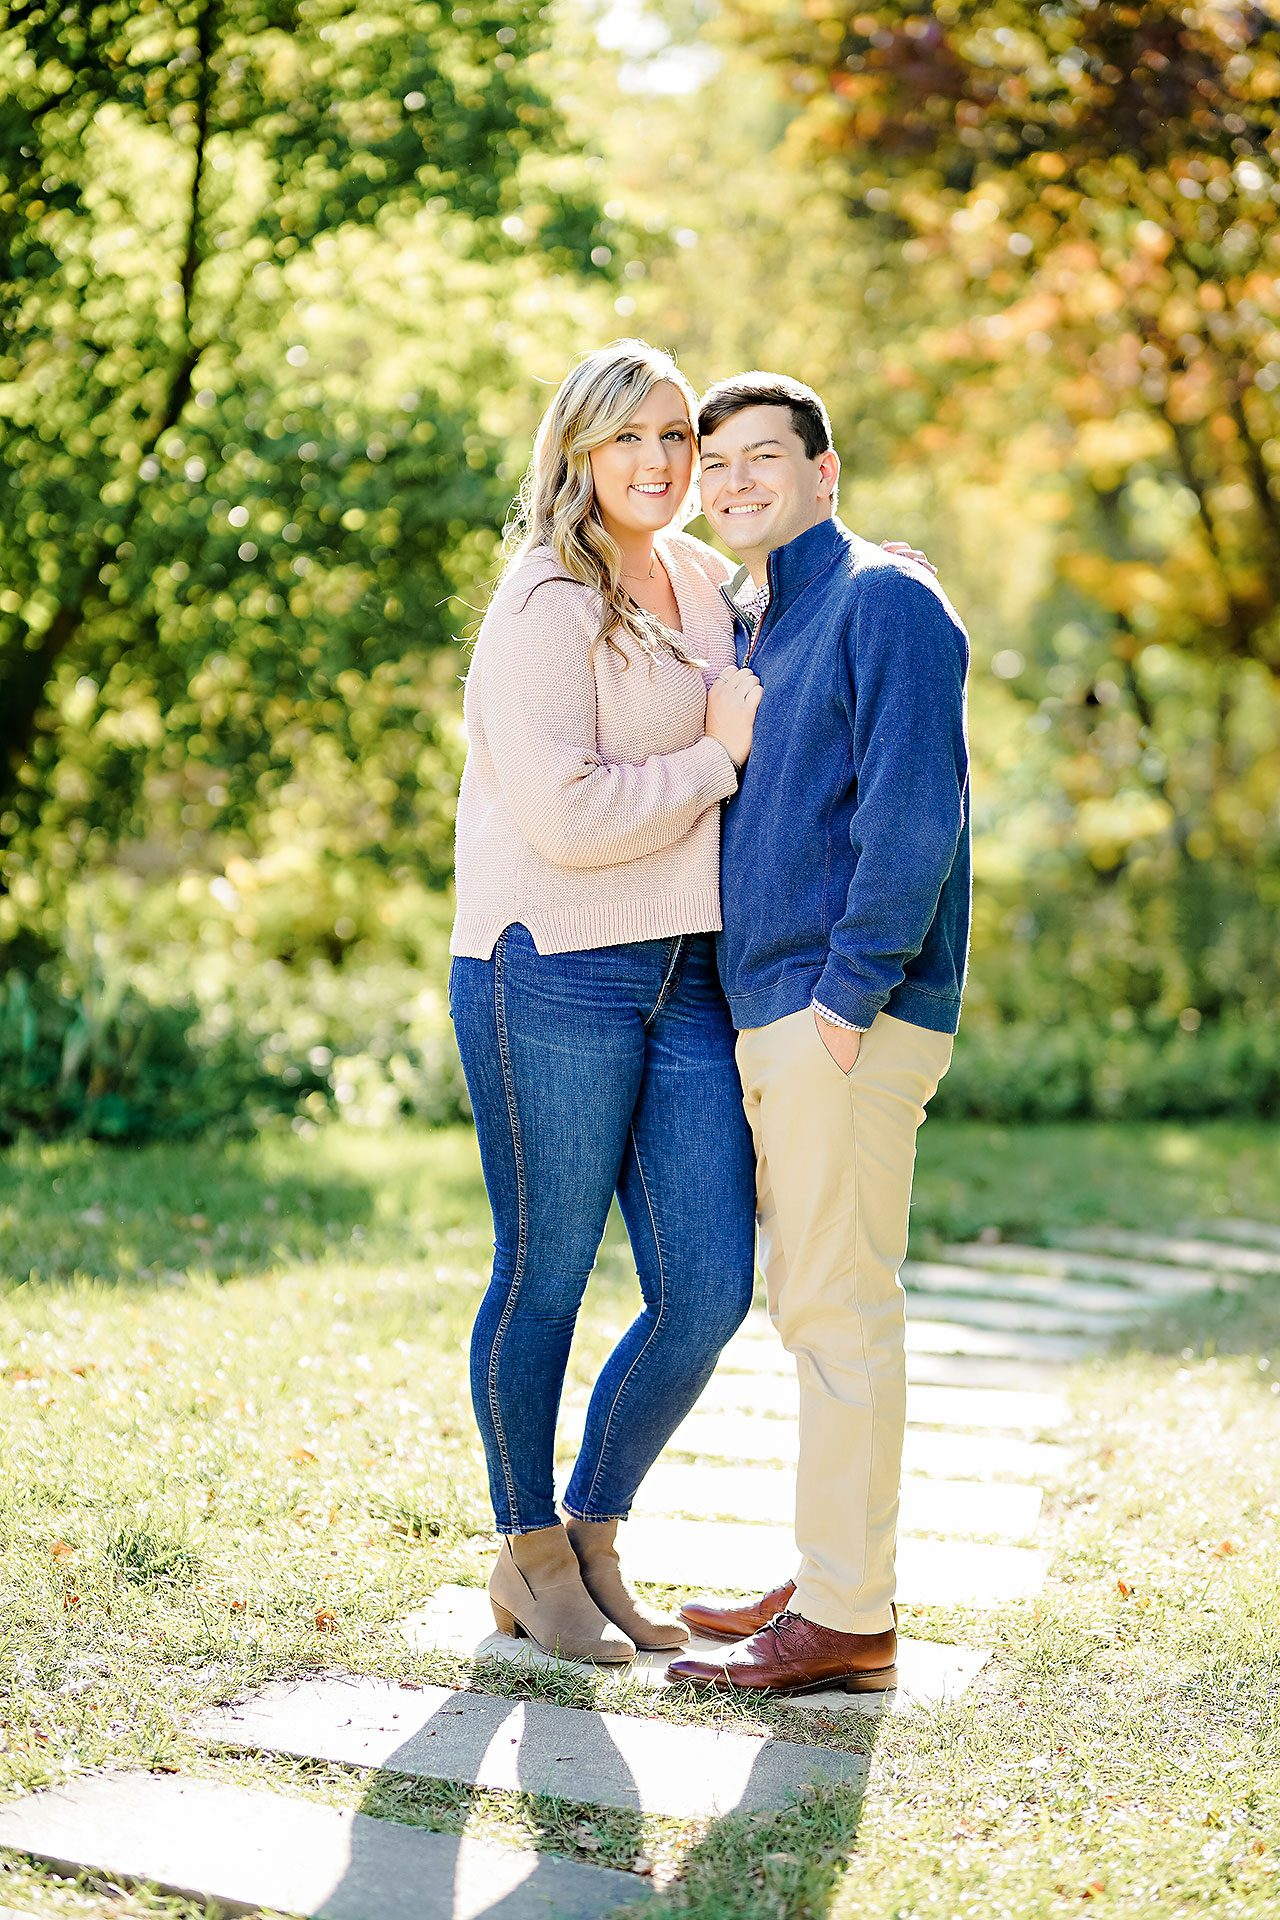 Taylor Case Newfields Engagement Session 059